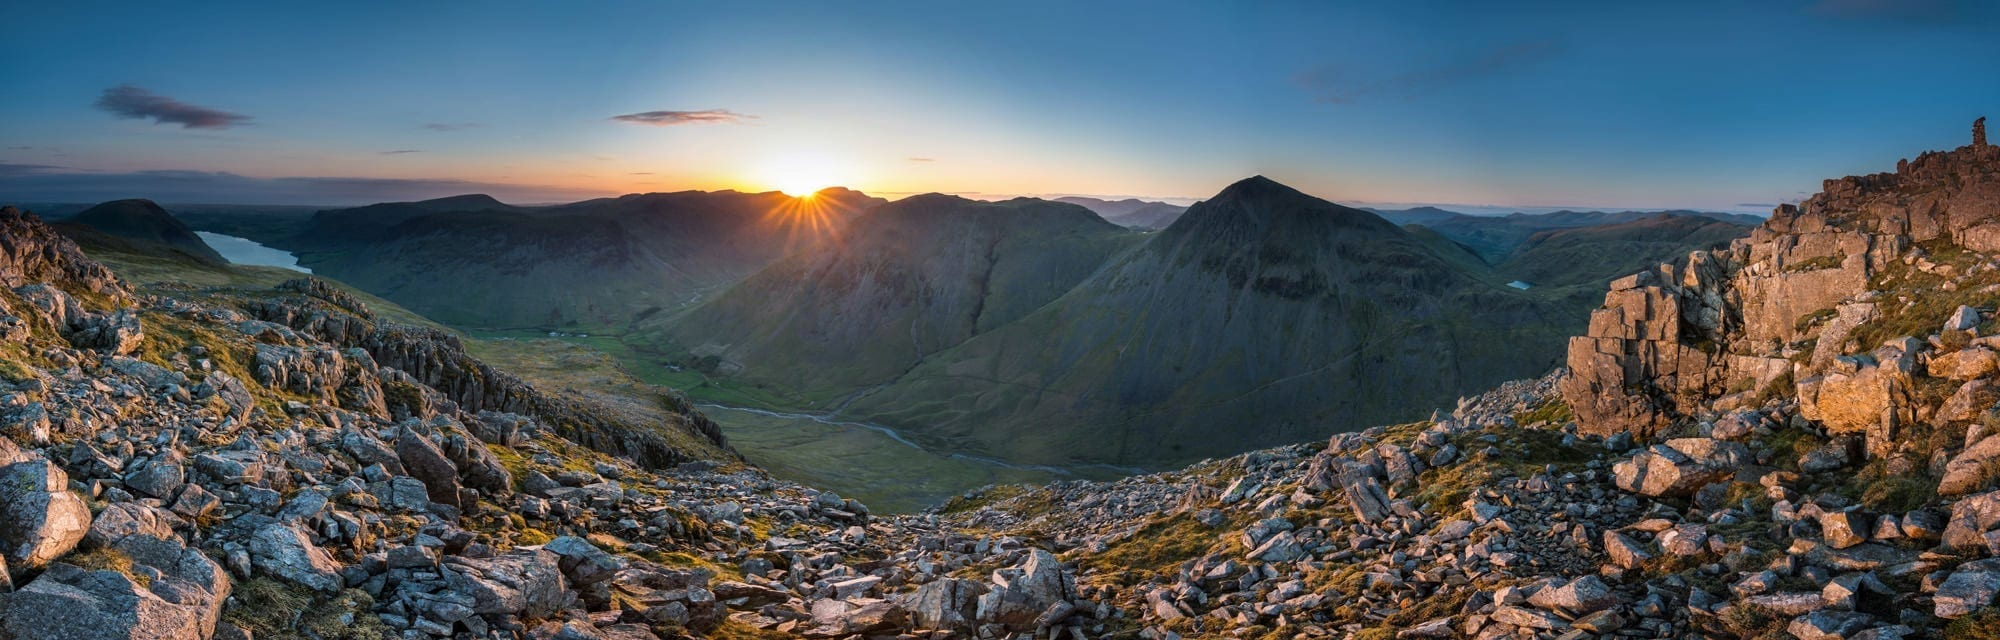 Lingmell Sunset - Lake District Photography Workshops